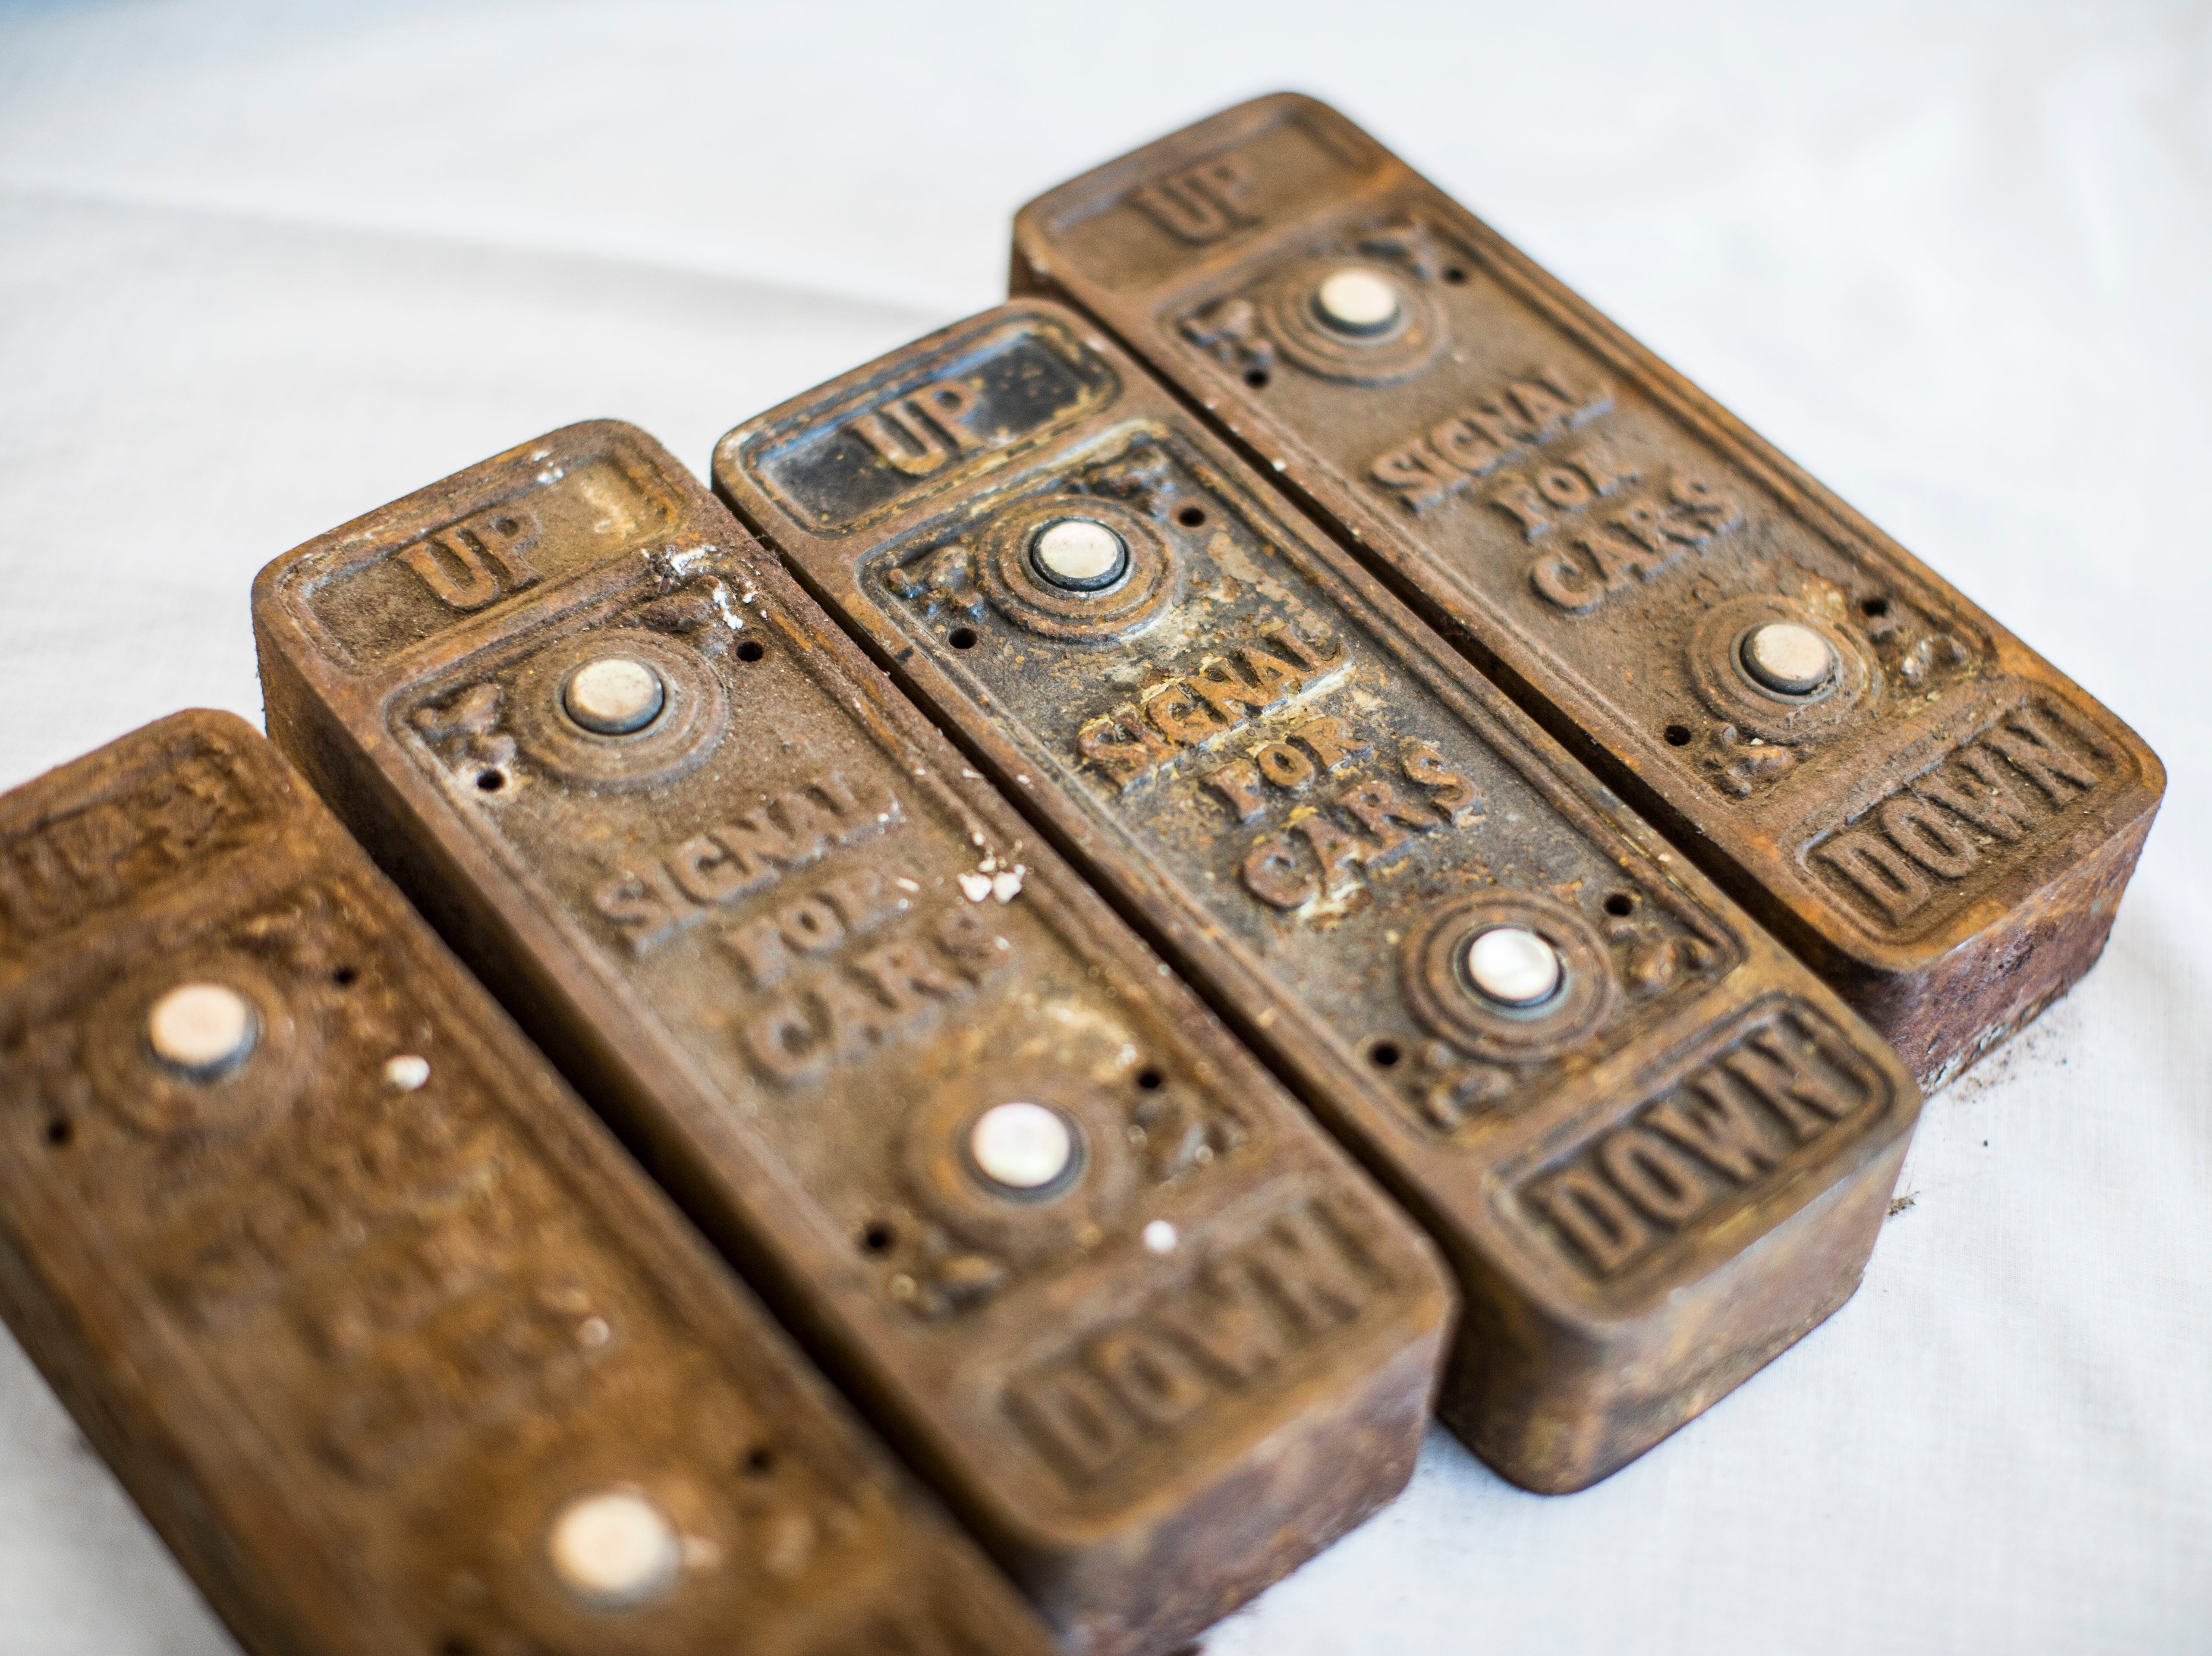 Cast iron elevator buttons have been returned to Michigan Central Station.